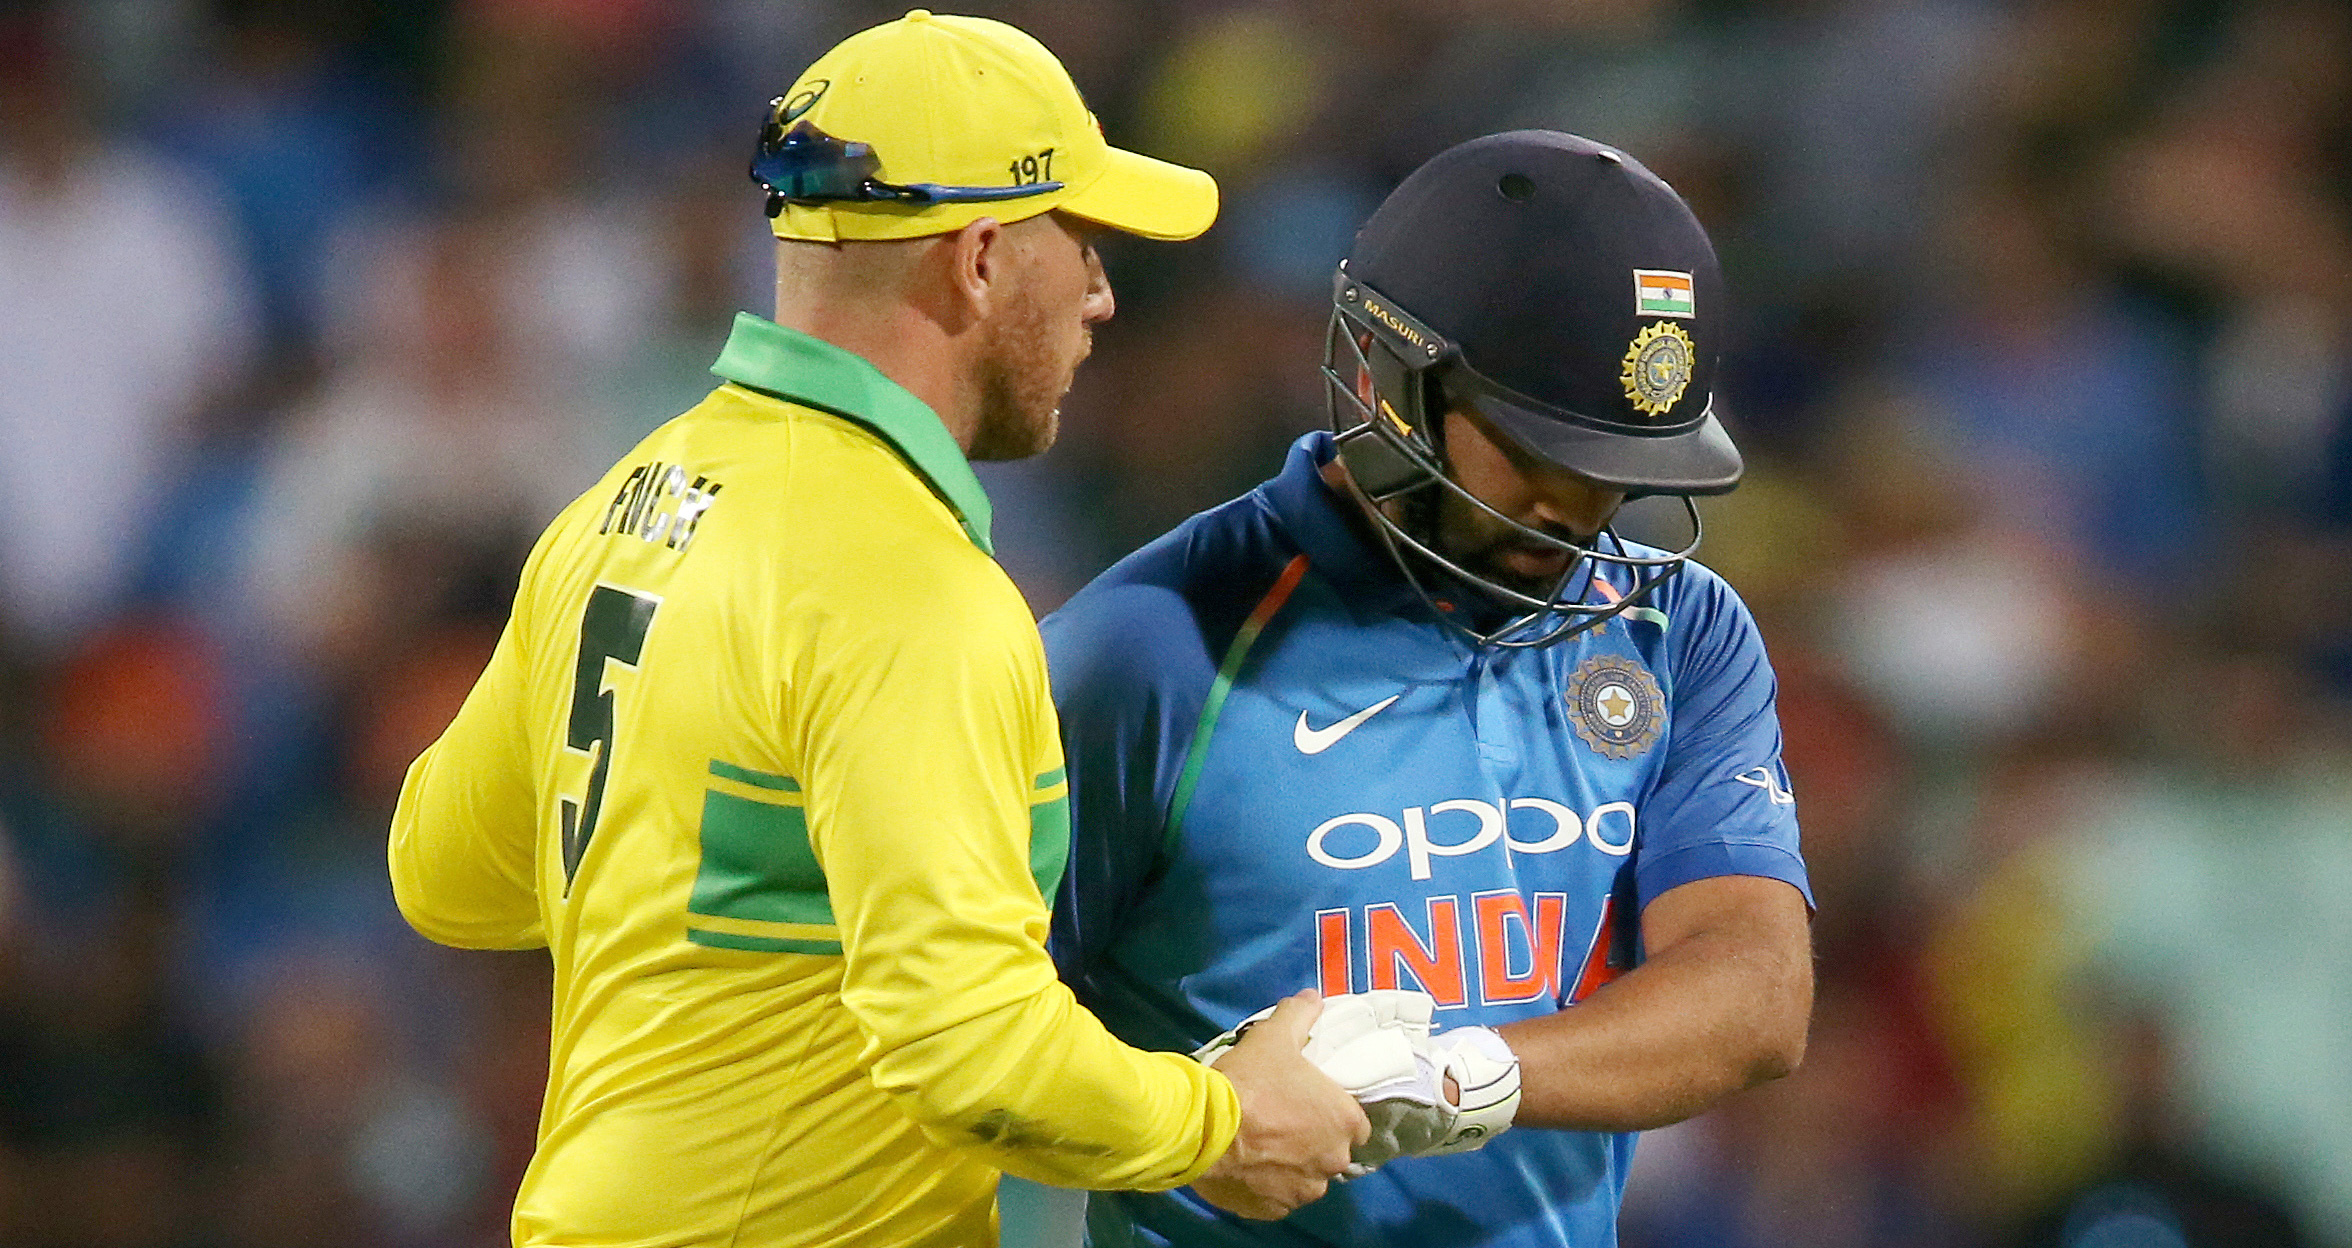 Australia's Aaron Finch, left, shakes hands with India's Rohit Sharma, right, after he was caught out against during their one day international cricket match in Sydney on Saturday, January 12, 2019.